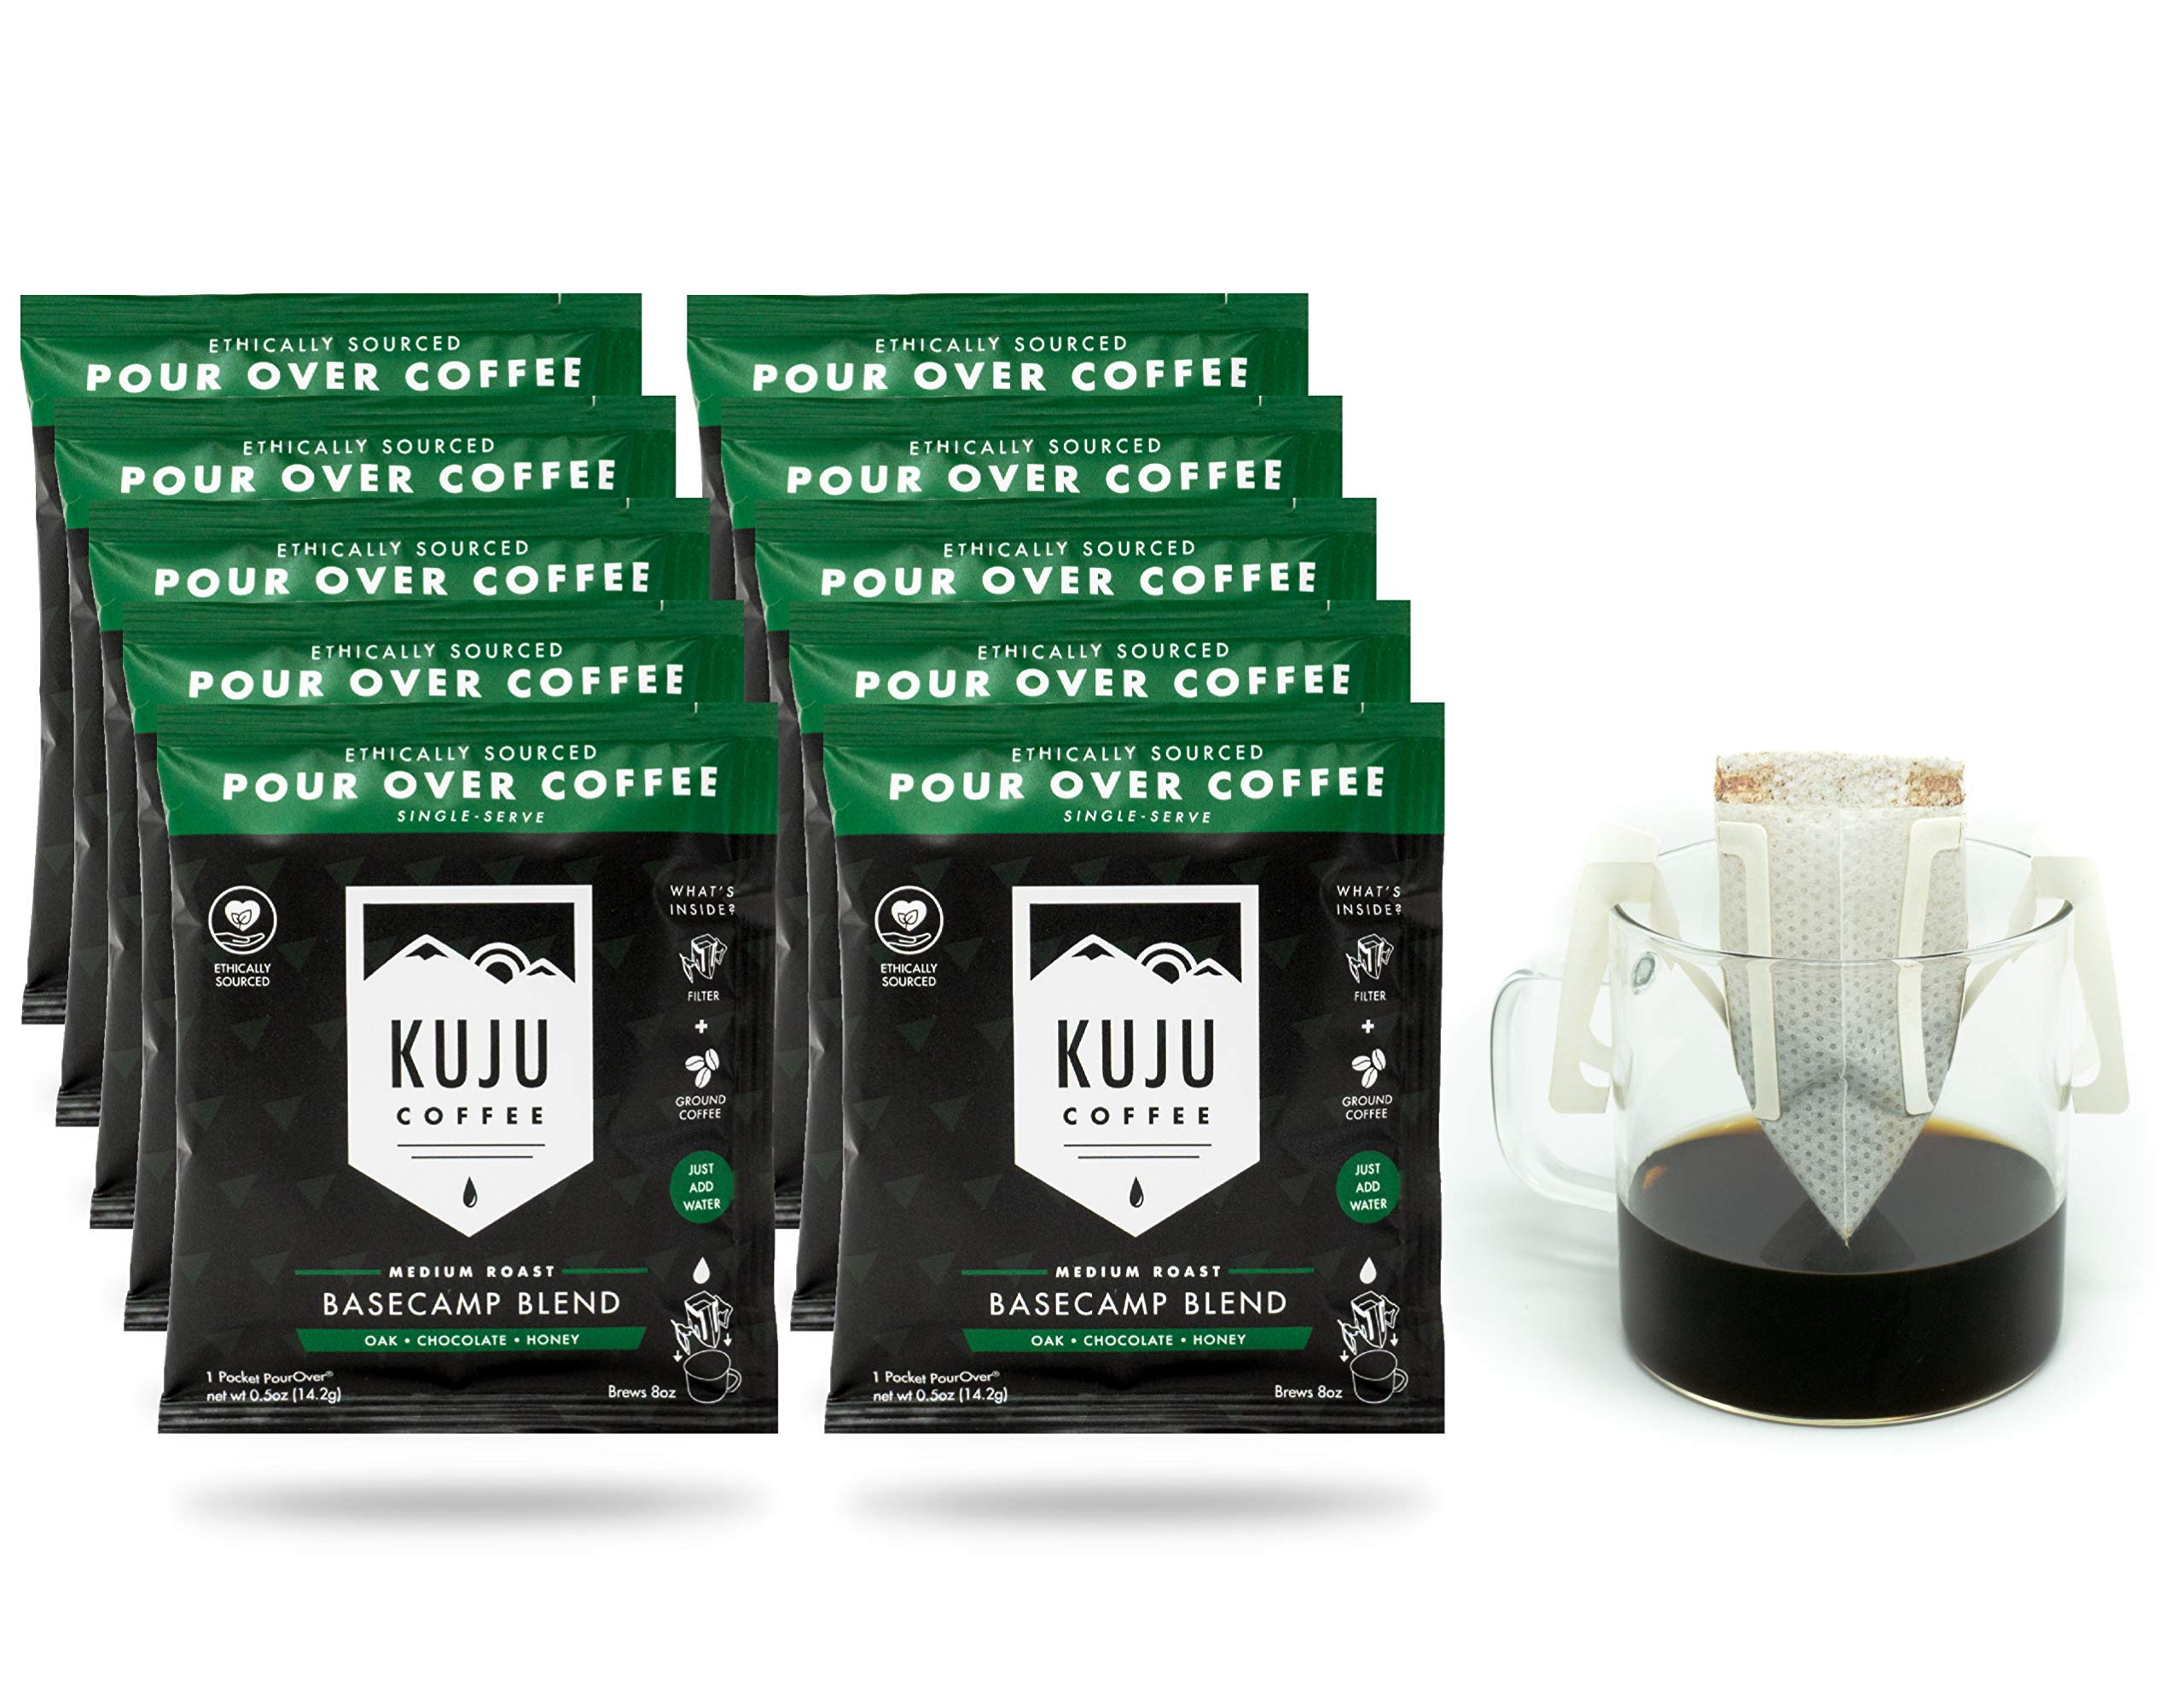 Kuju Coffee Premium Single-Serve Pour Over Coffee   Ethically Sourced, Specialty Grade, Eco-Friendly   Basecamp Blend, Medium Roast, 10-pack